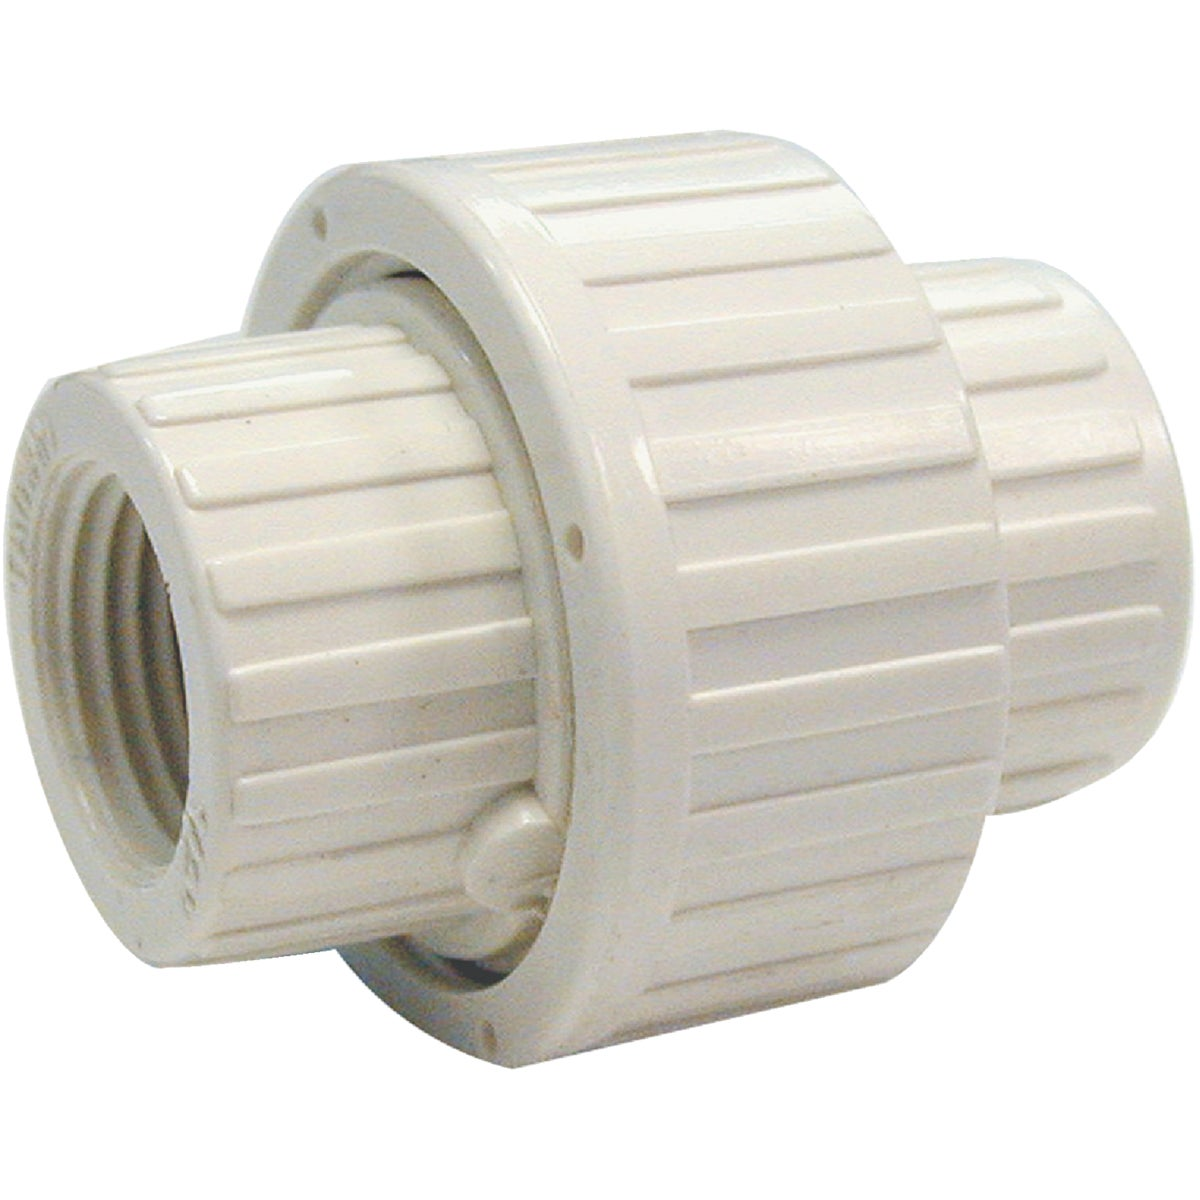 "WHT 3/4"" FIP PVC UNION - 164-134 by Mueller B K"